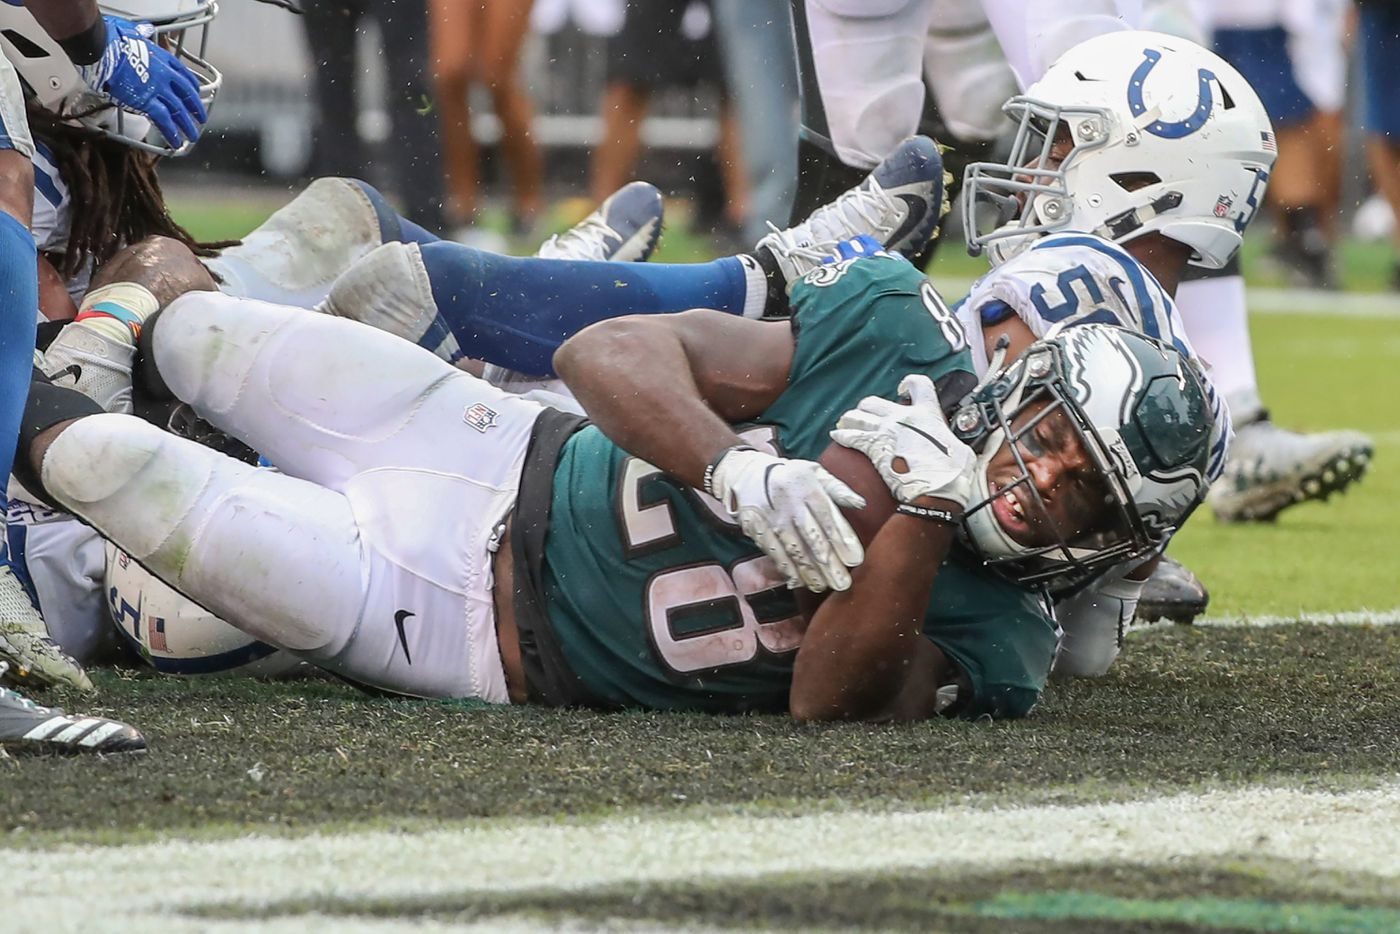 With Wendell Smallwood and Corey Clement, Eagles dig deep into depleted backfield to grind past Colts